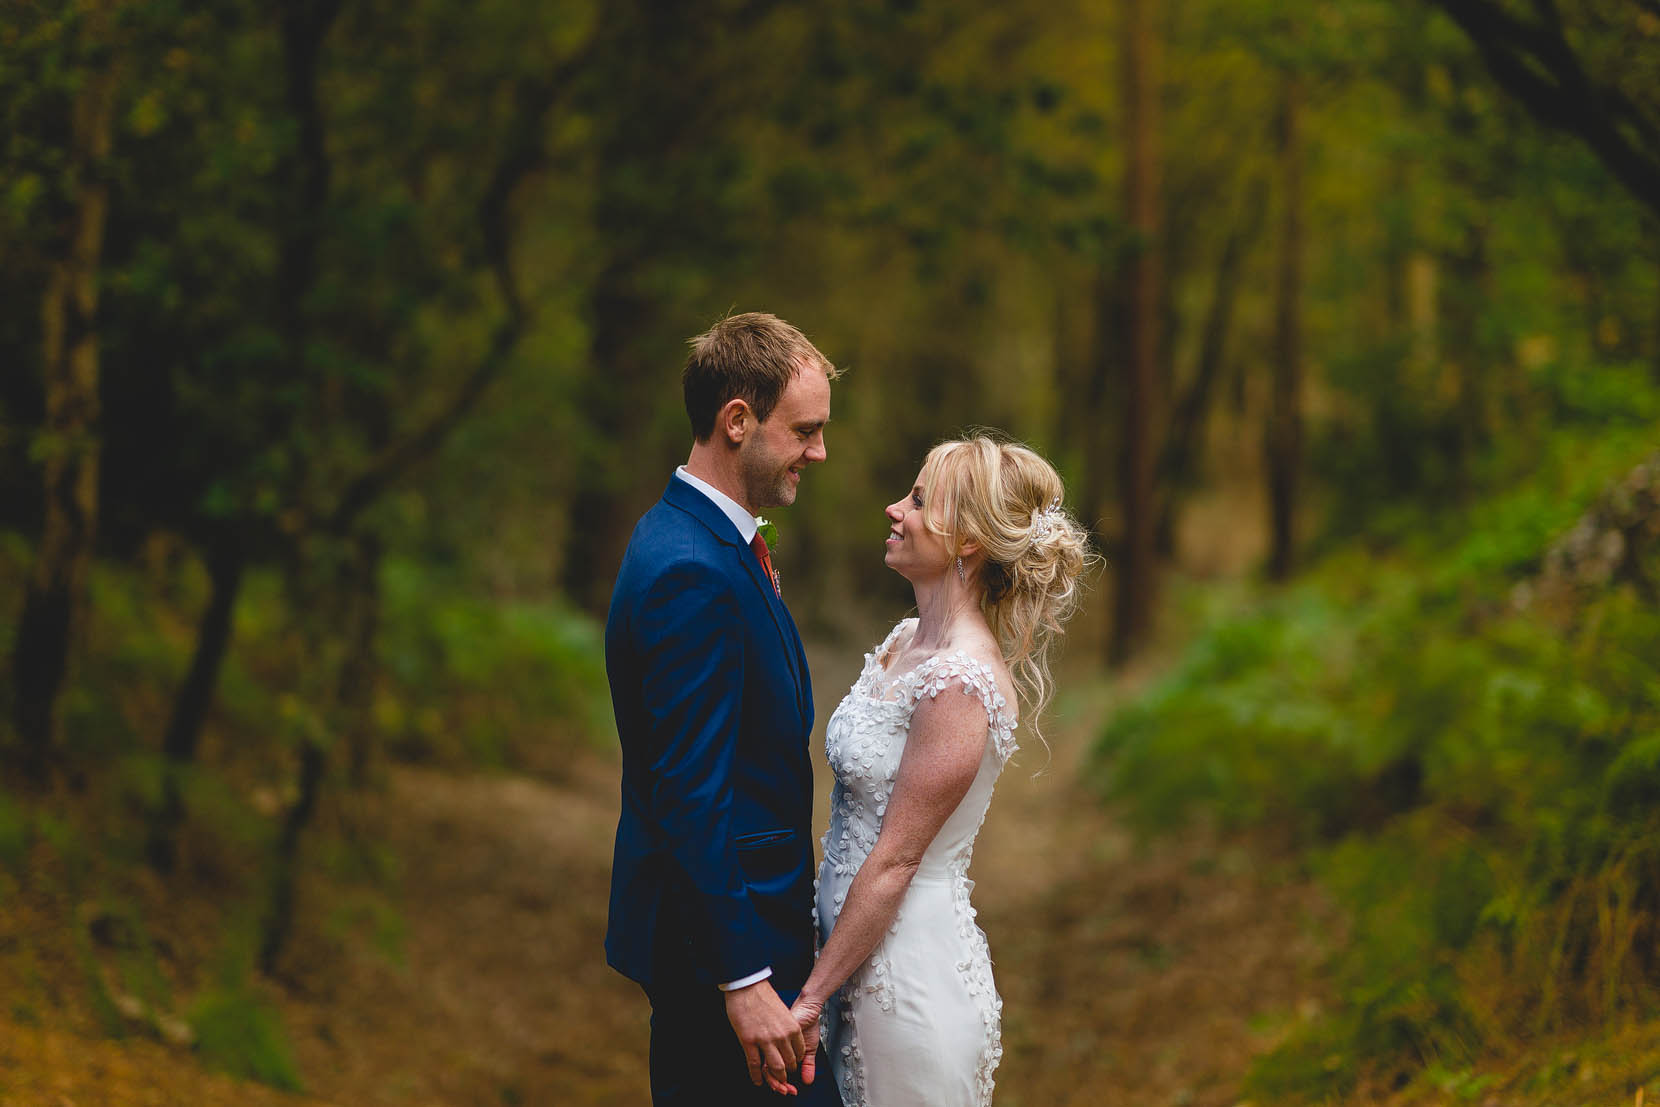 kevin and laura get married in somerleyton and host a reception in parents back garden st olaves